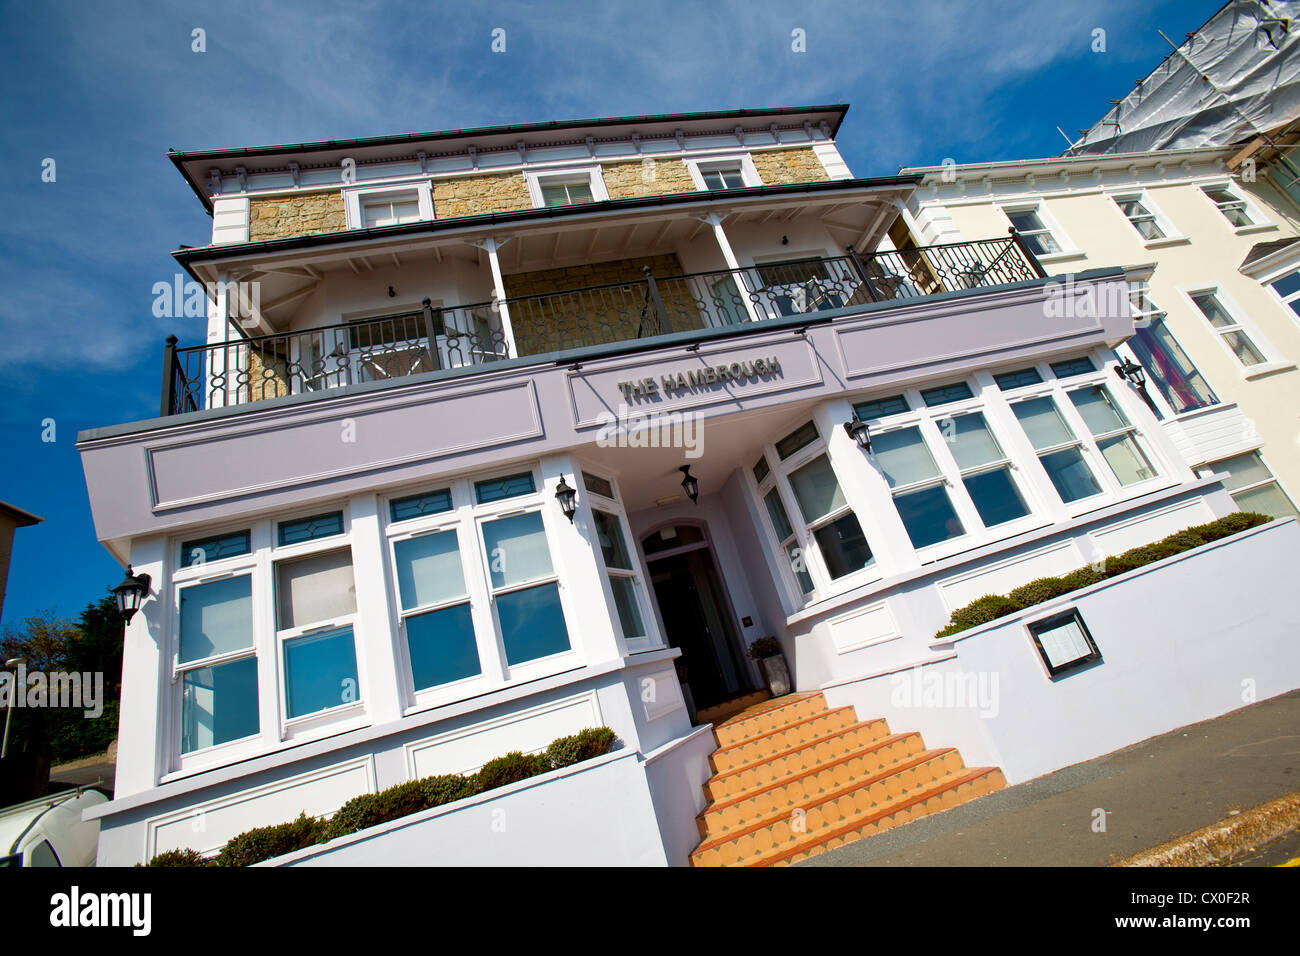 The Hambrough, Hotel, Restaurant, Robert Thompson, Ventnor, Isle of Wight, England, UK, - Stock Image